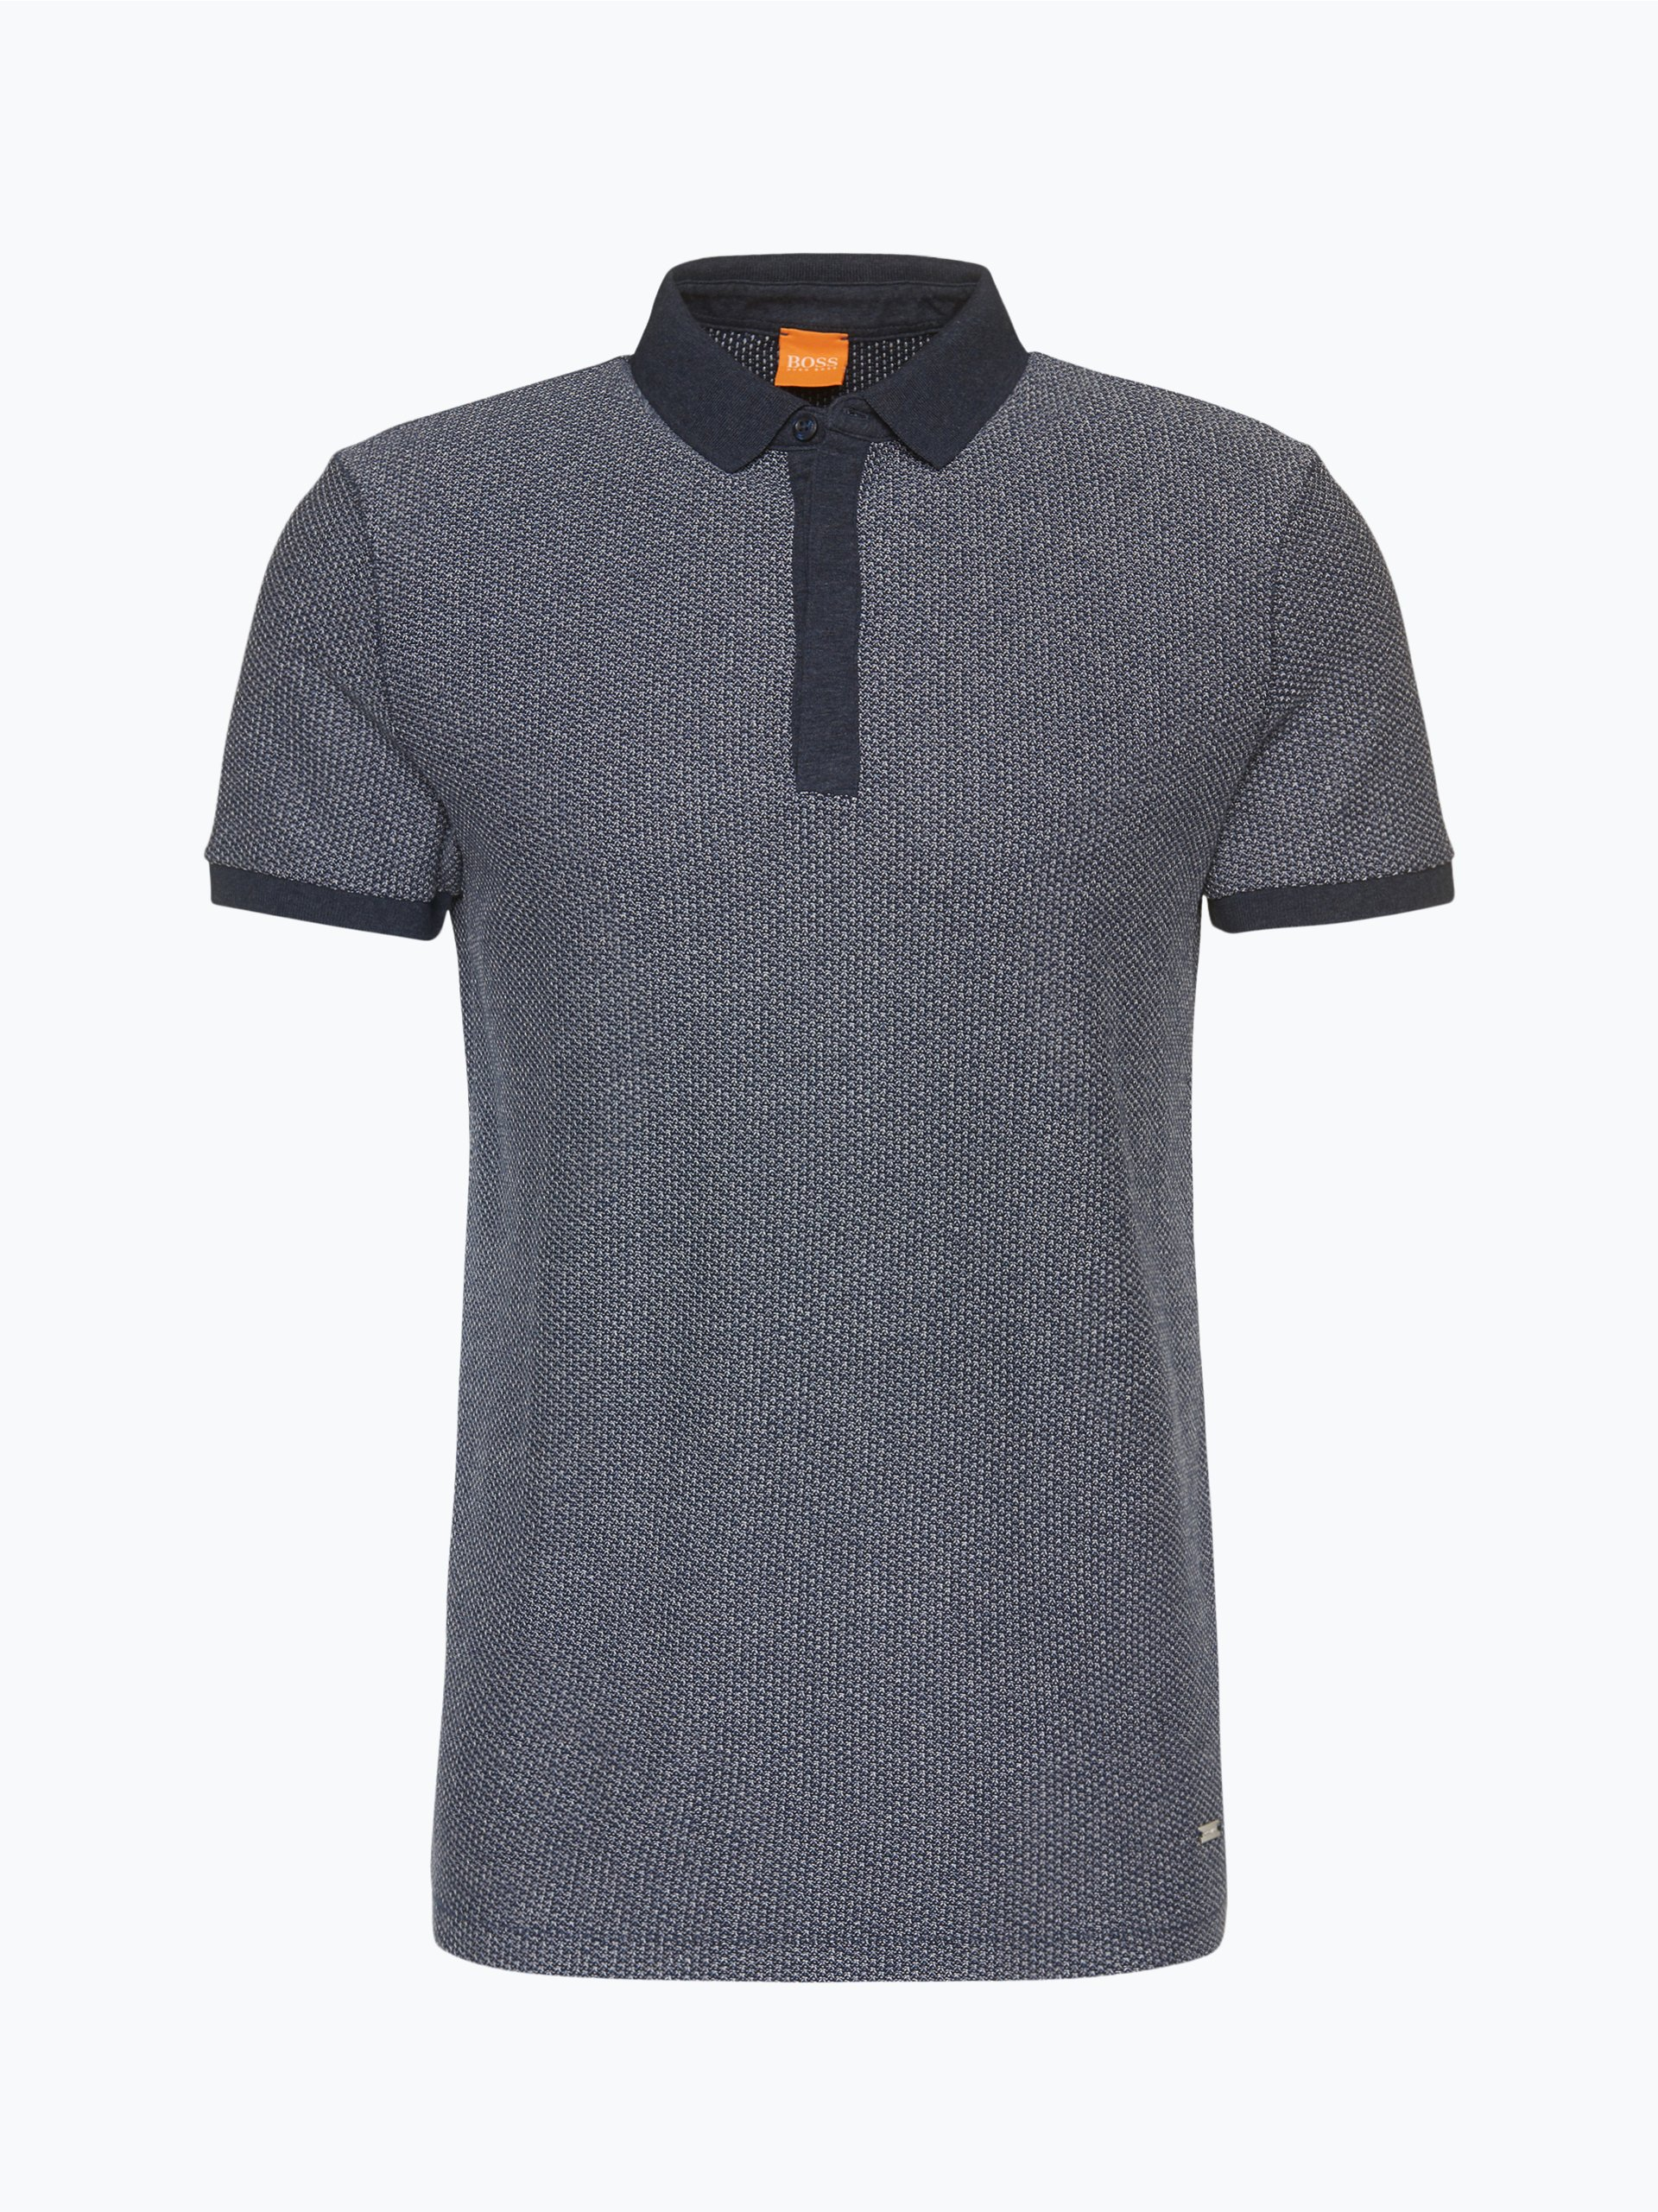 BOSS Orange Herren Poloshirt - Persys